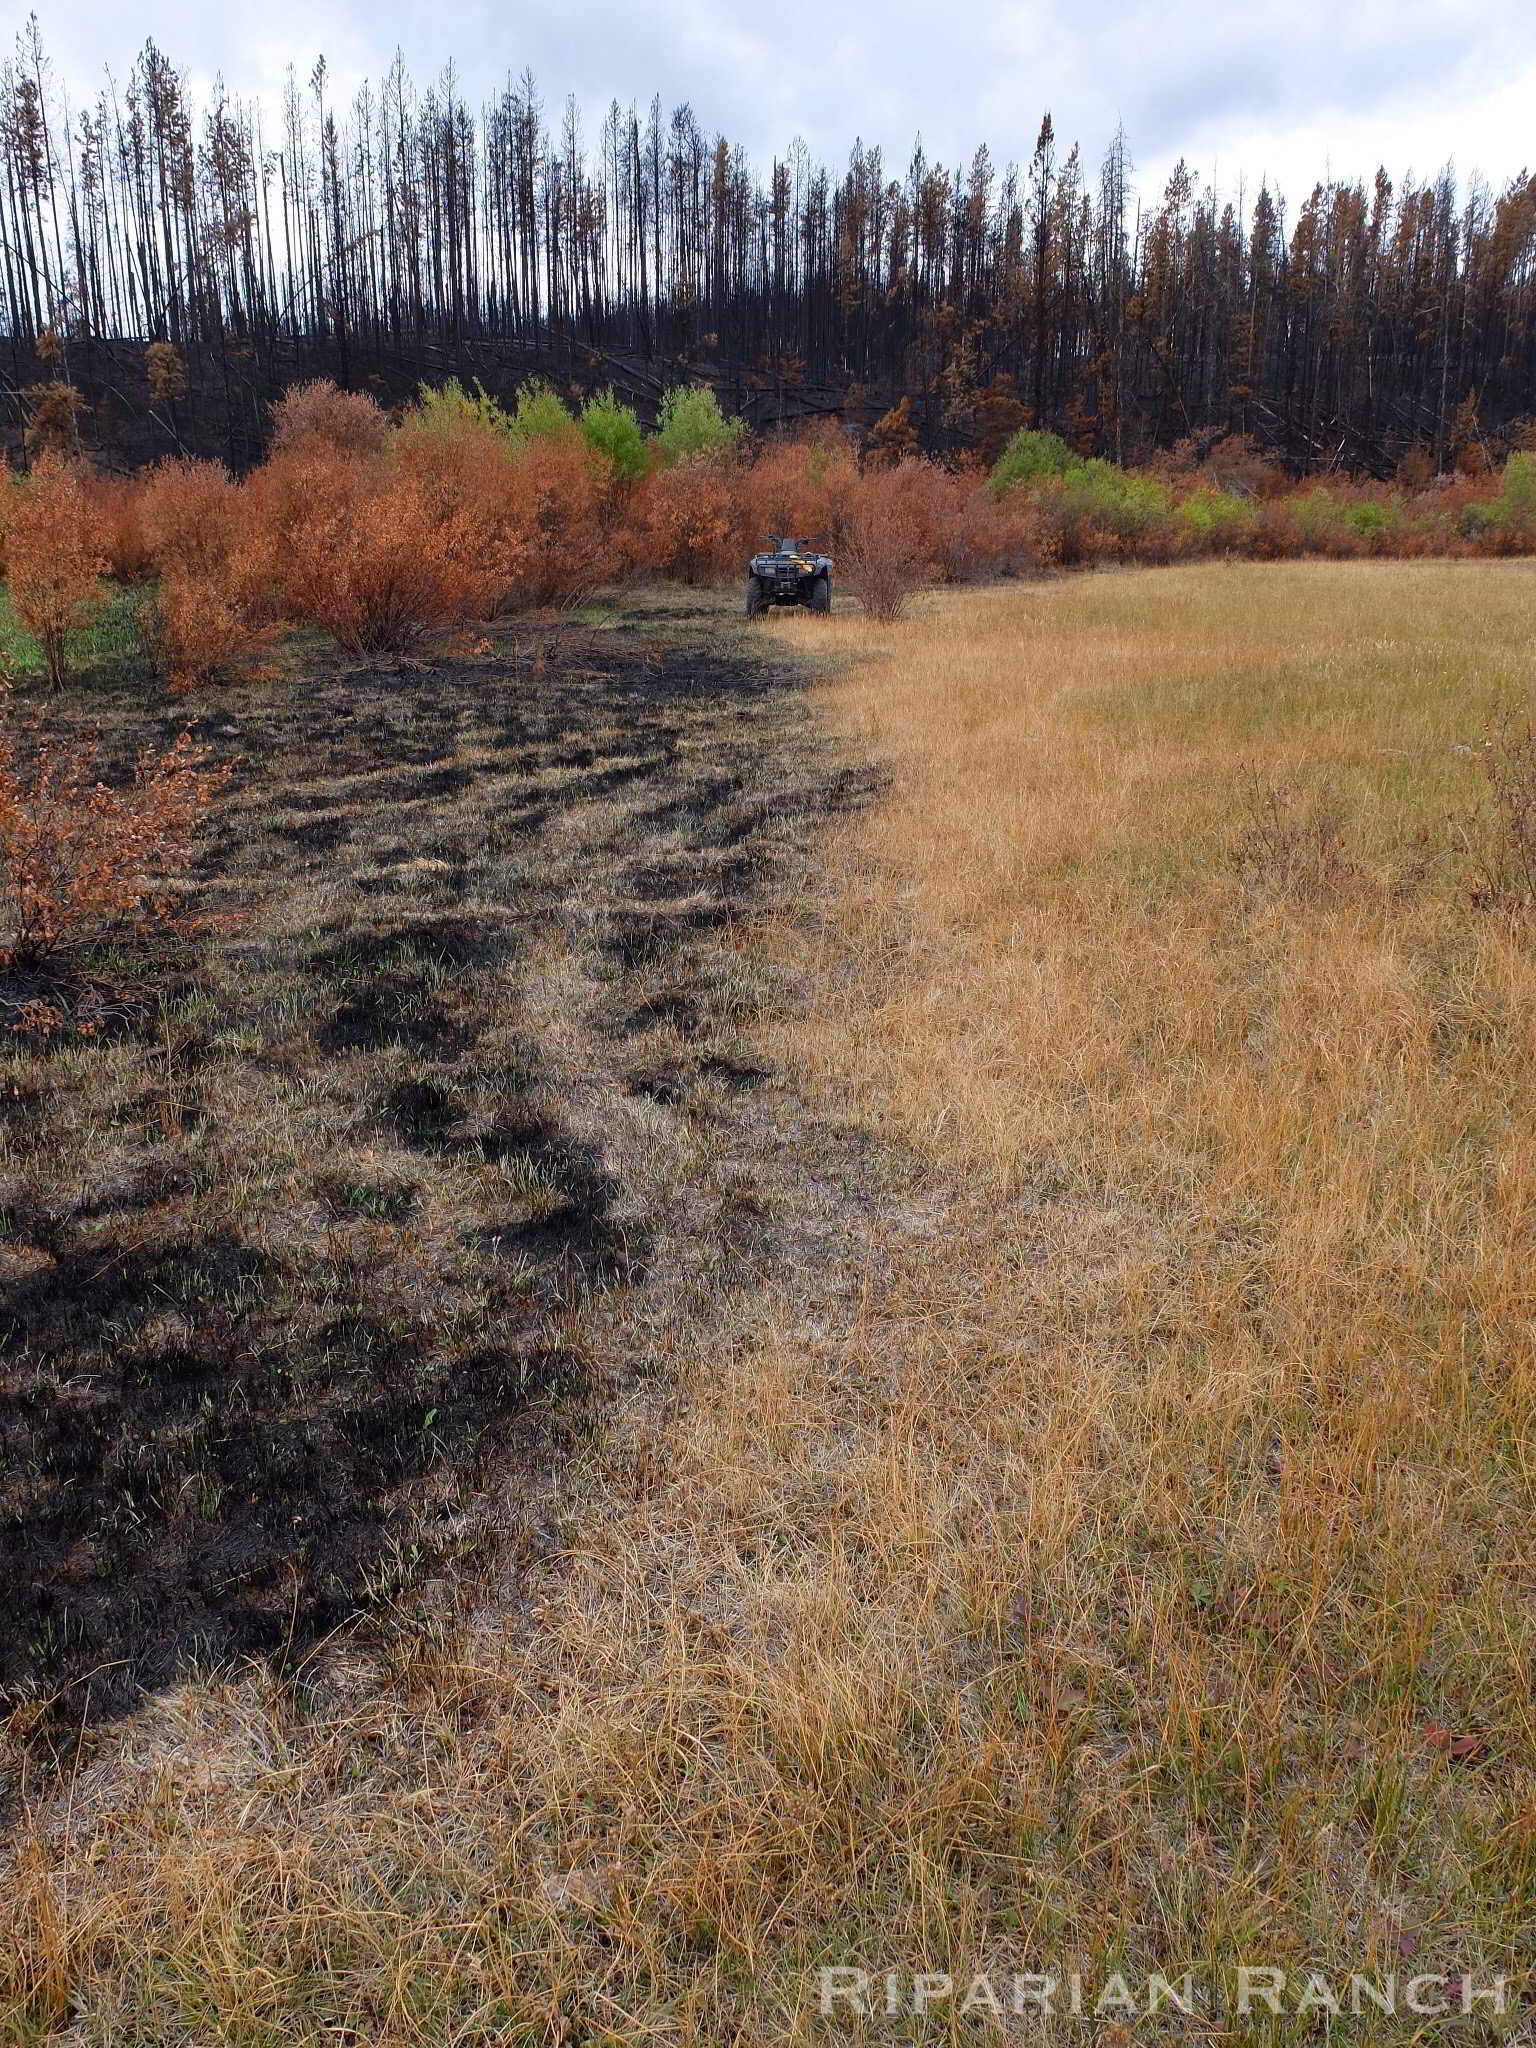 Rotationally grazed field with green plants on right and burned plants on left due to wildfires